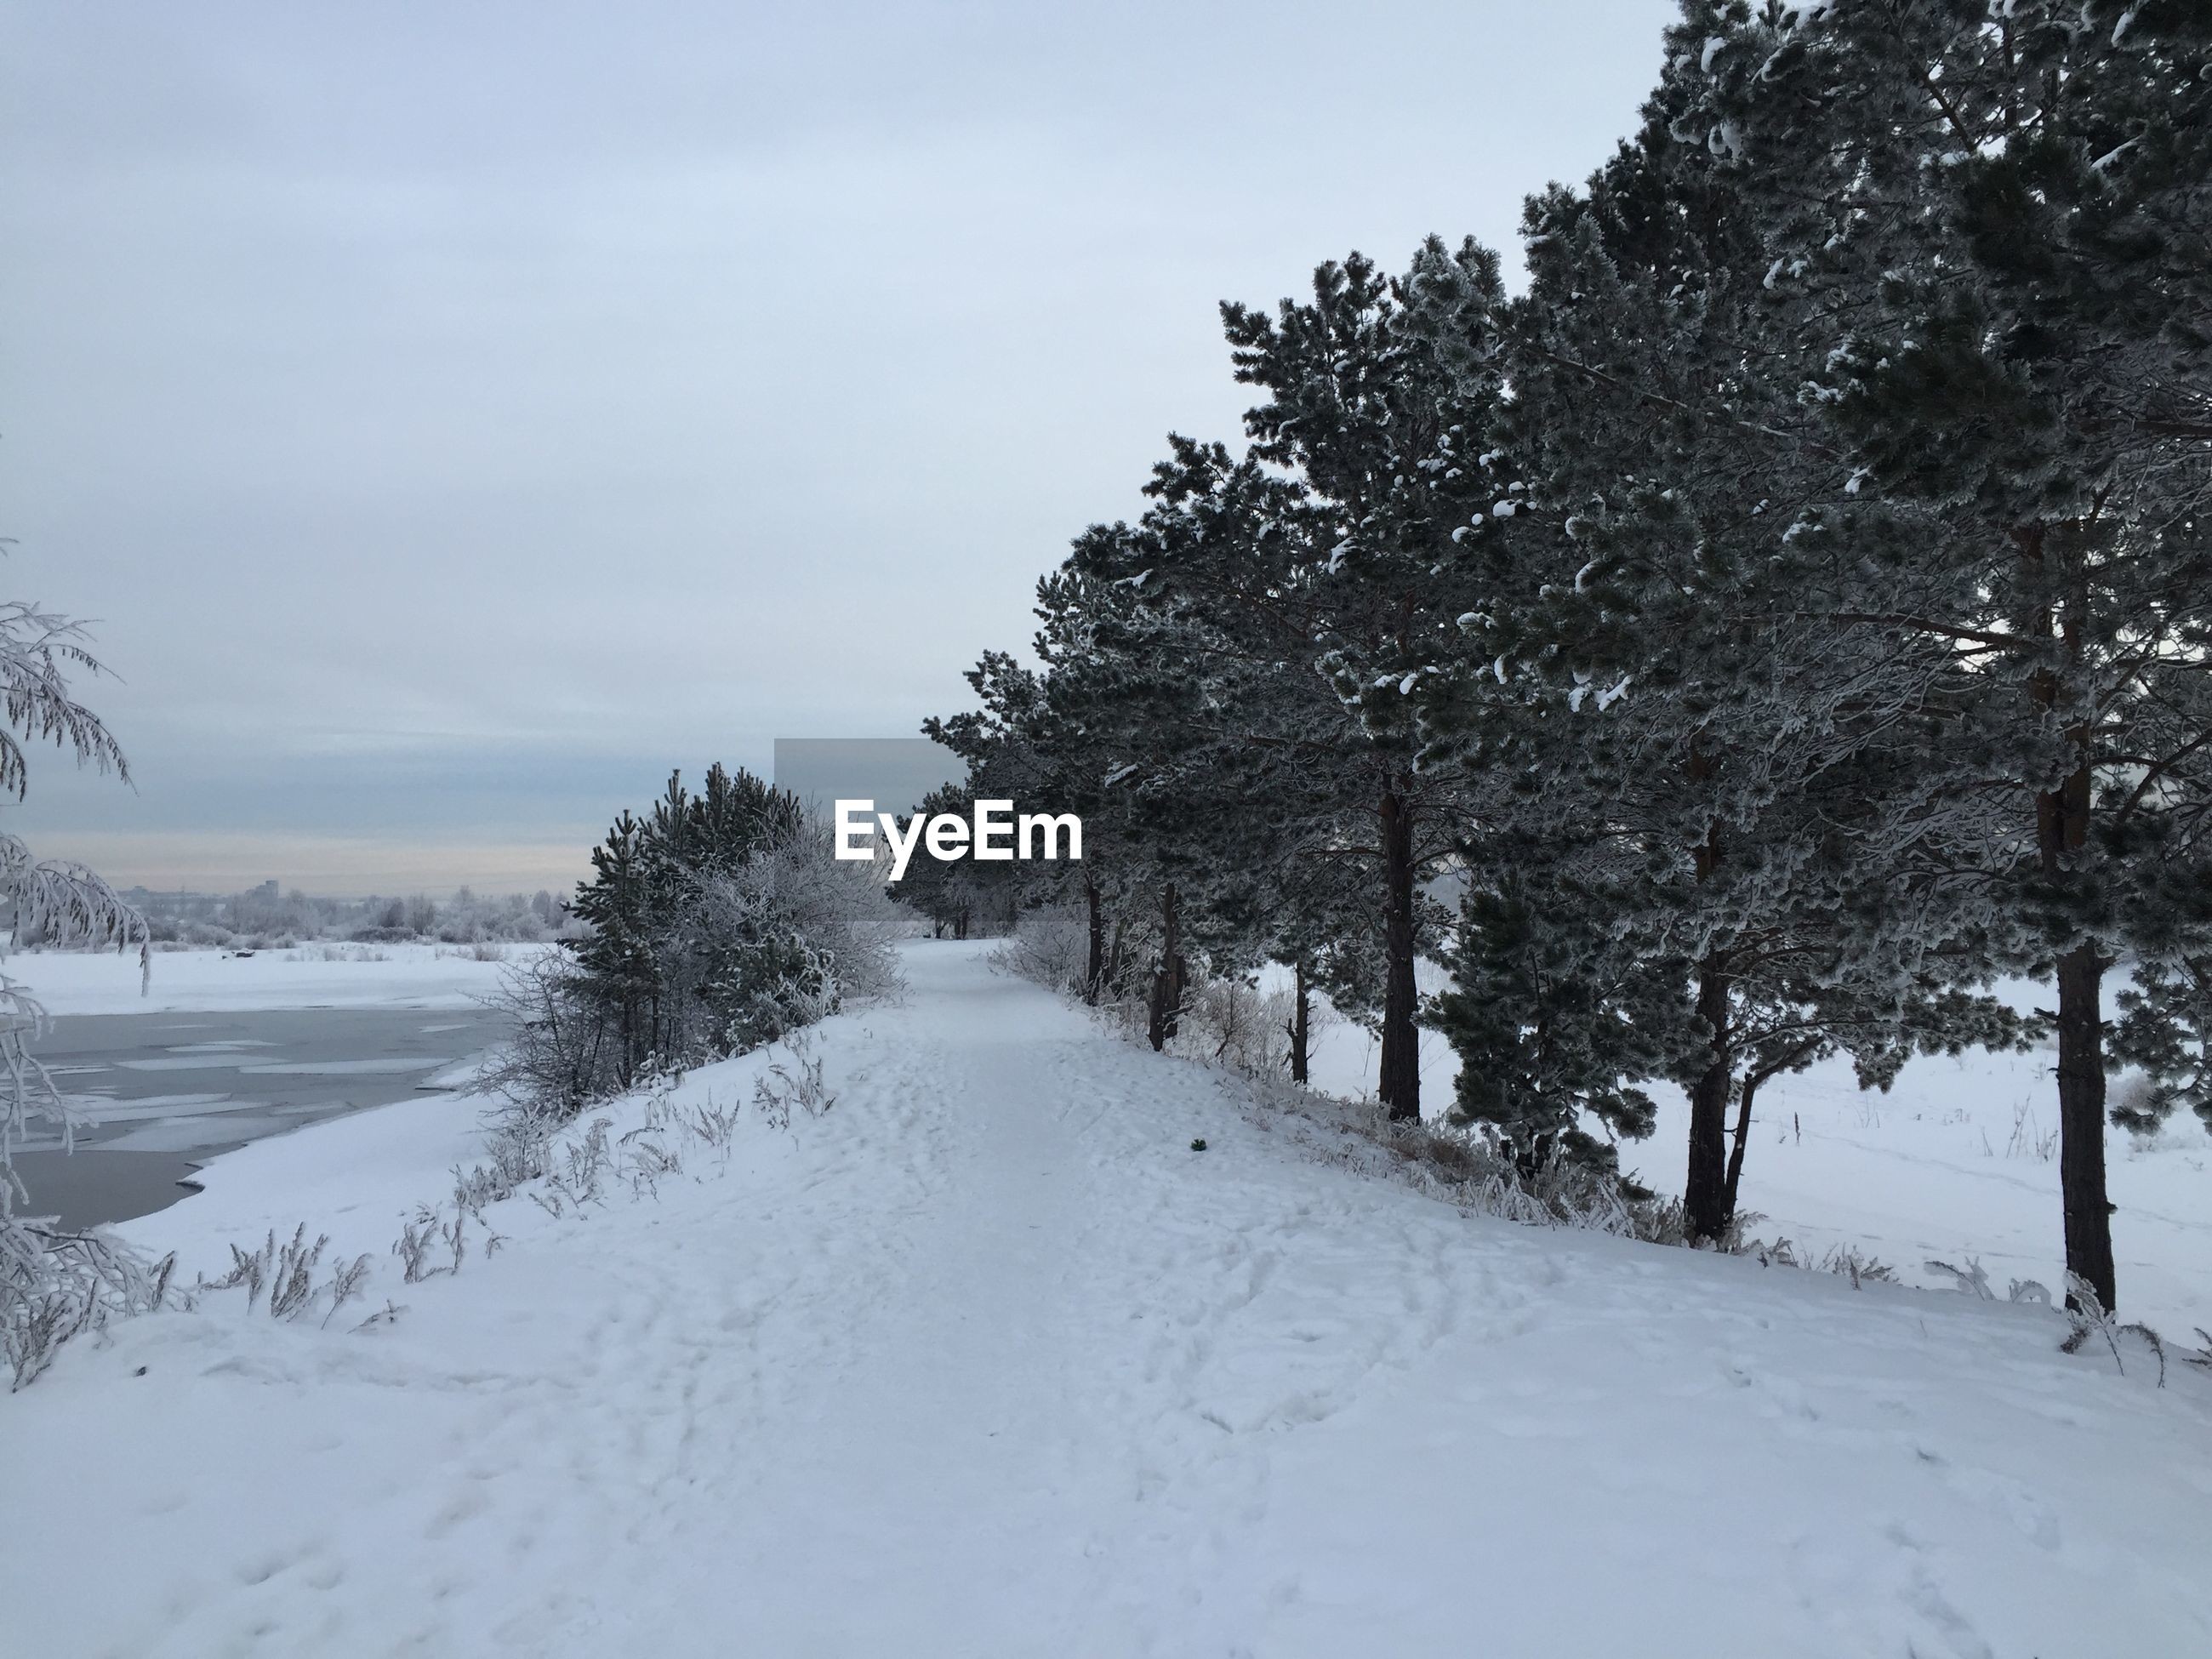 SNOW COVERED TREES BY ROAD AGAINST SKY